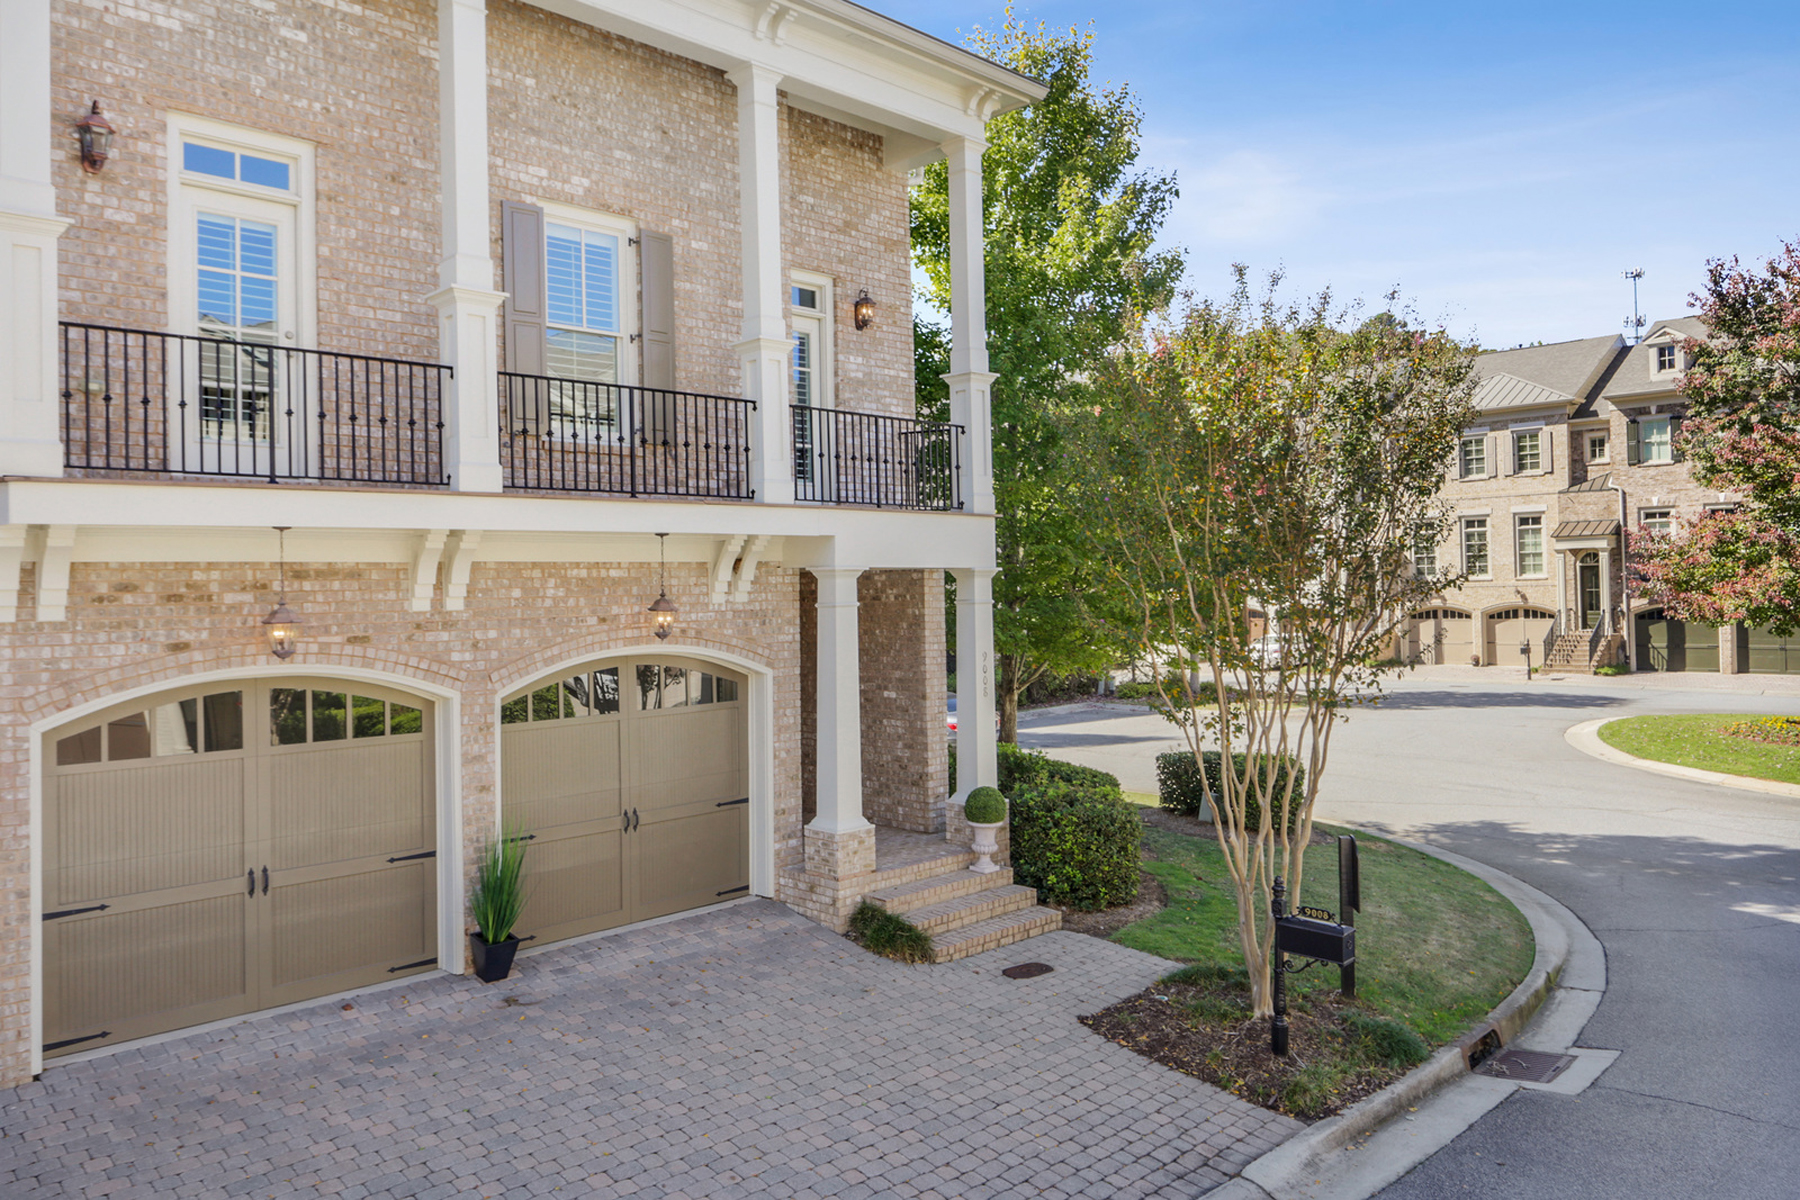 Property のために 売買 アット Exceptional Townhome Living 9008 Riverbend Manor, Alpharetta, ジョージア 30022 アメリカ